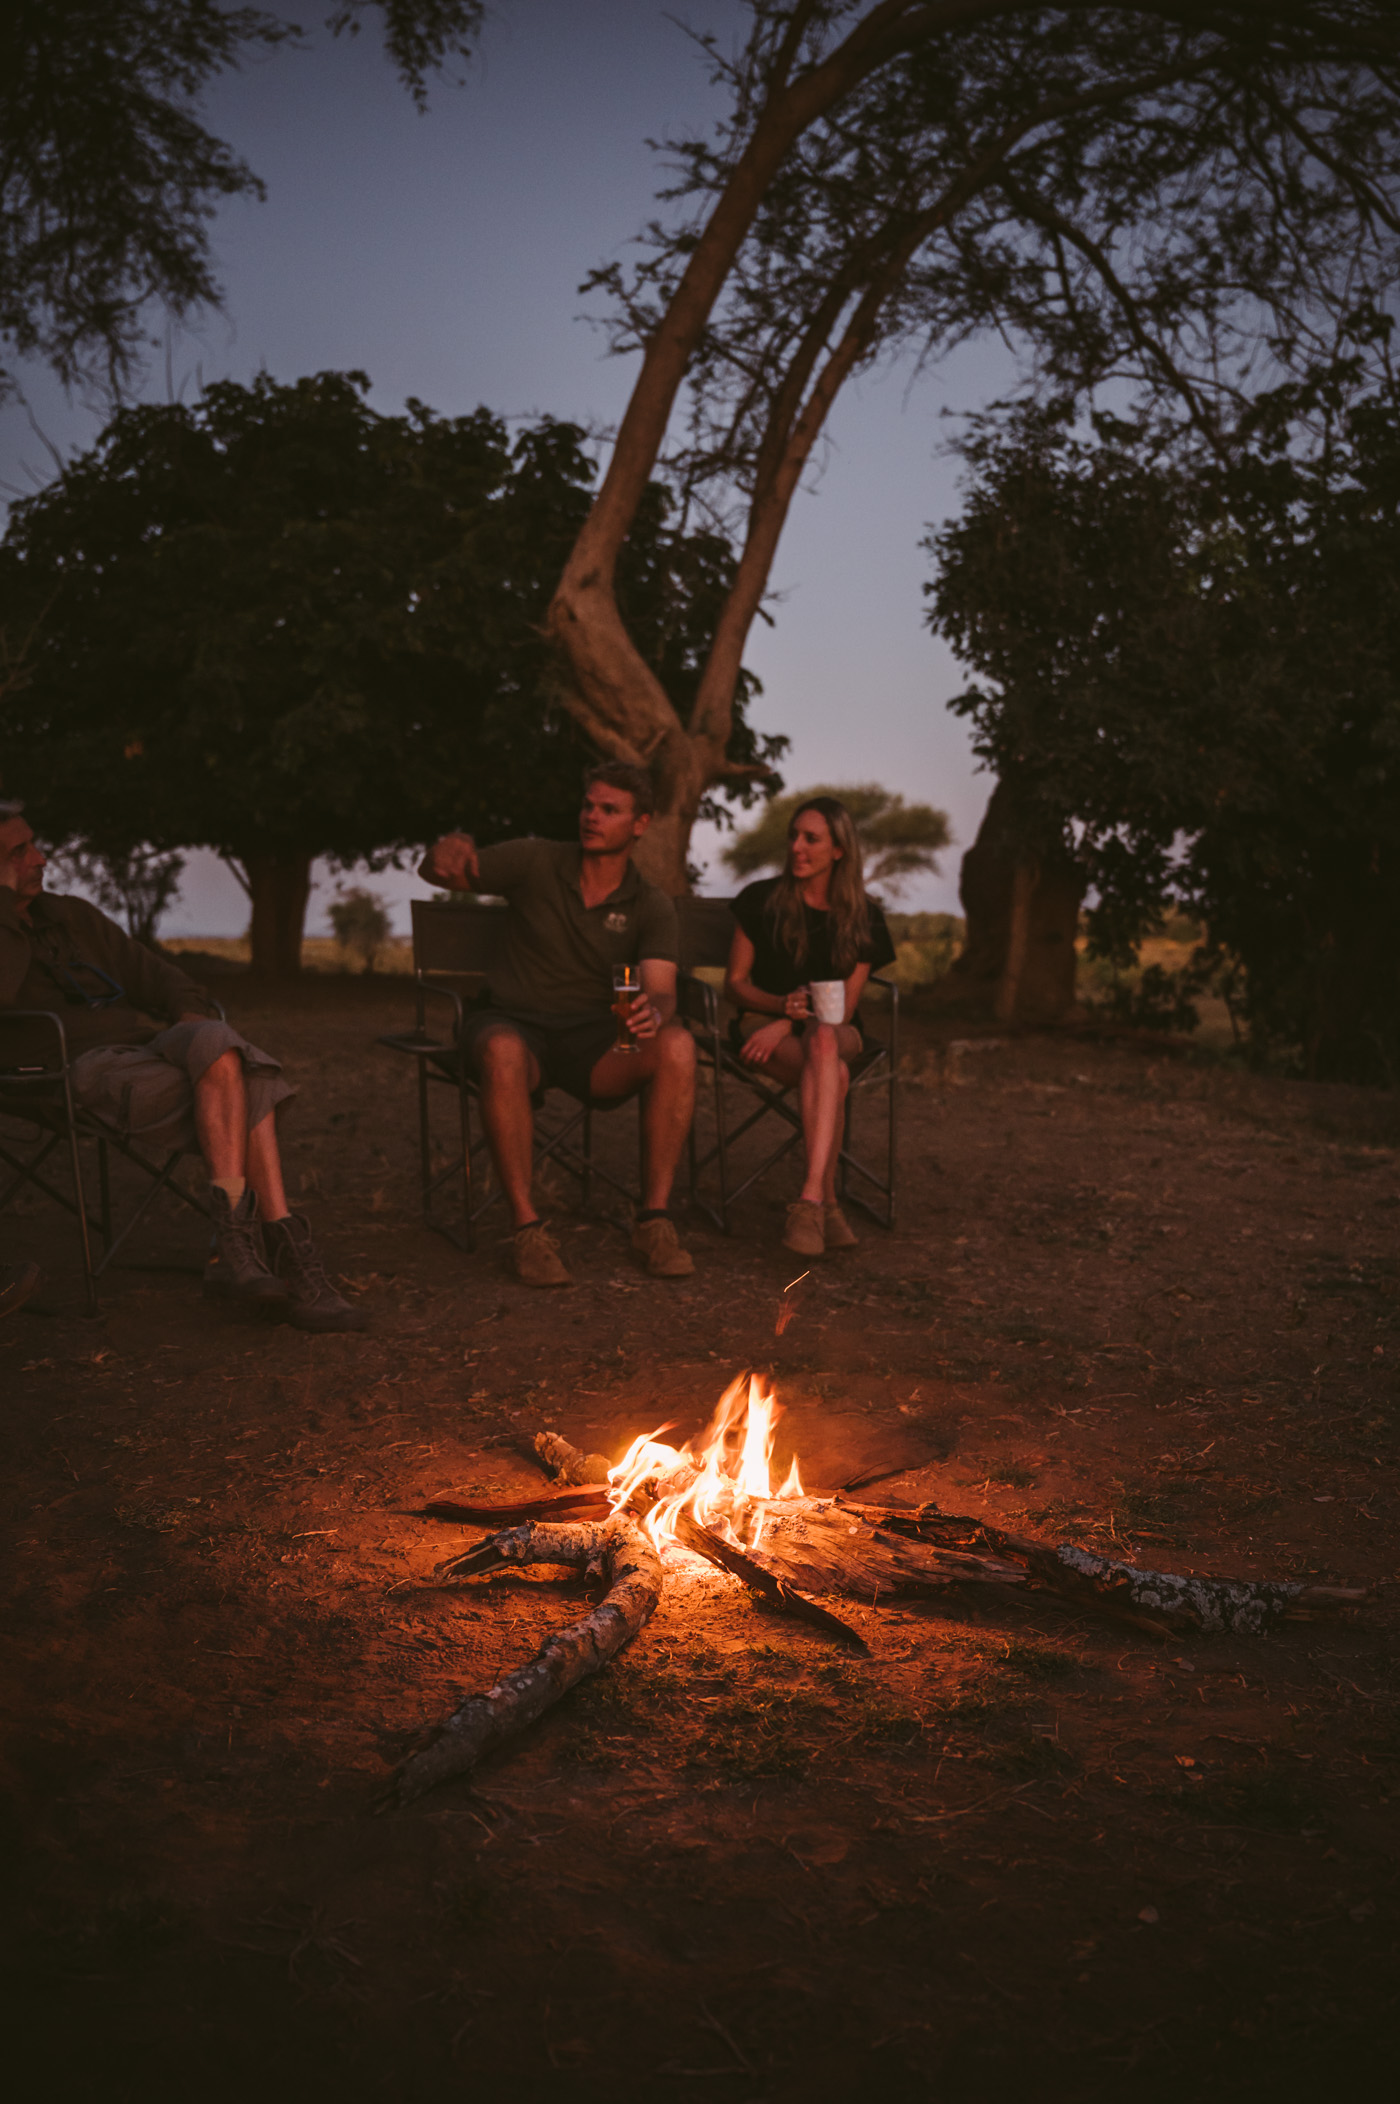 Kyle & Sarah of Tusk & Mane at the fireplace in Lower Zambezi National Park Zambia